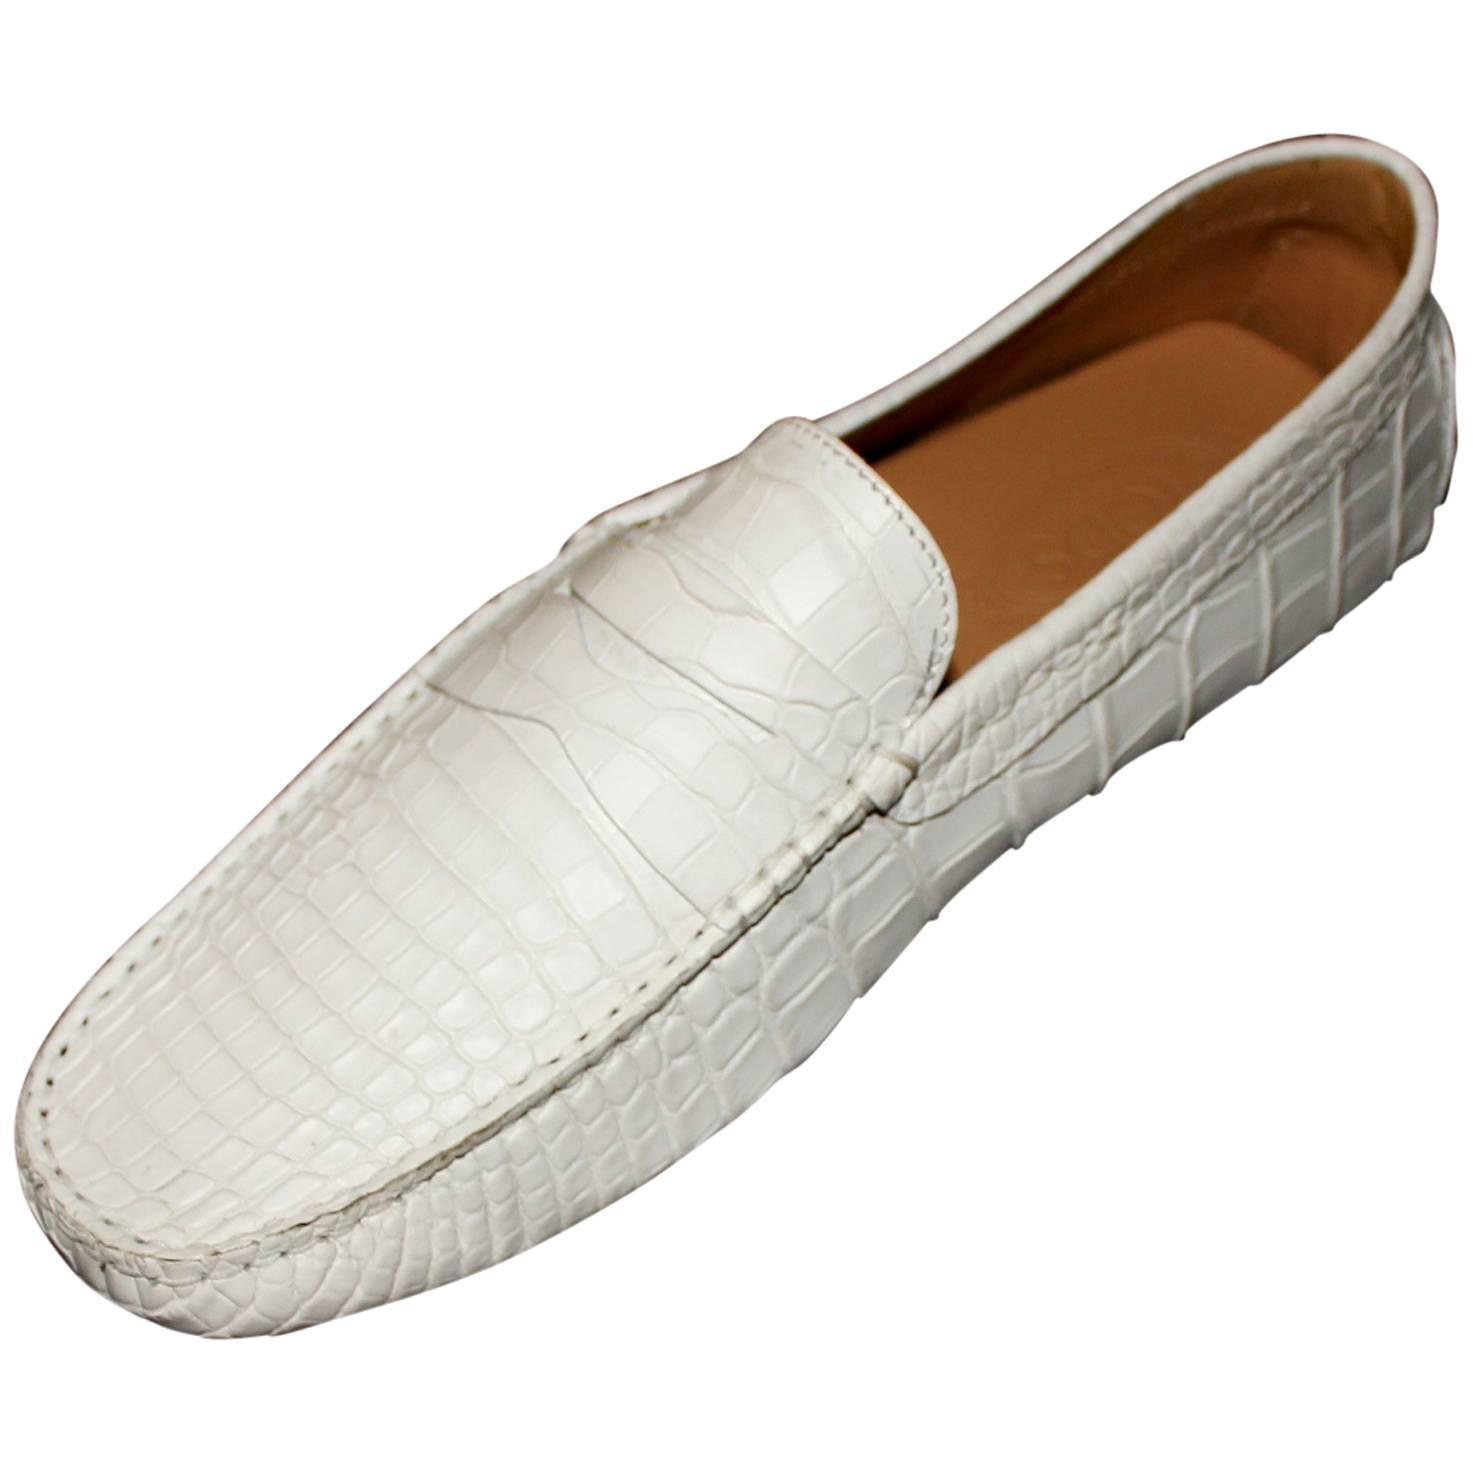 Tods Mens Shoes Italian Mocassimo Greca Nuovo Driver White leather (TDM09) Materials: Leather This style is known for confort and quality. Brand new, Comes in JP Tod's box with its .